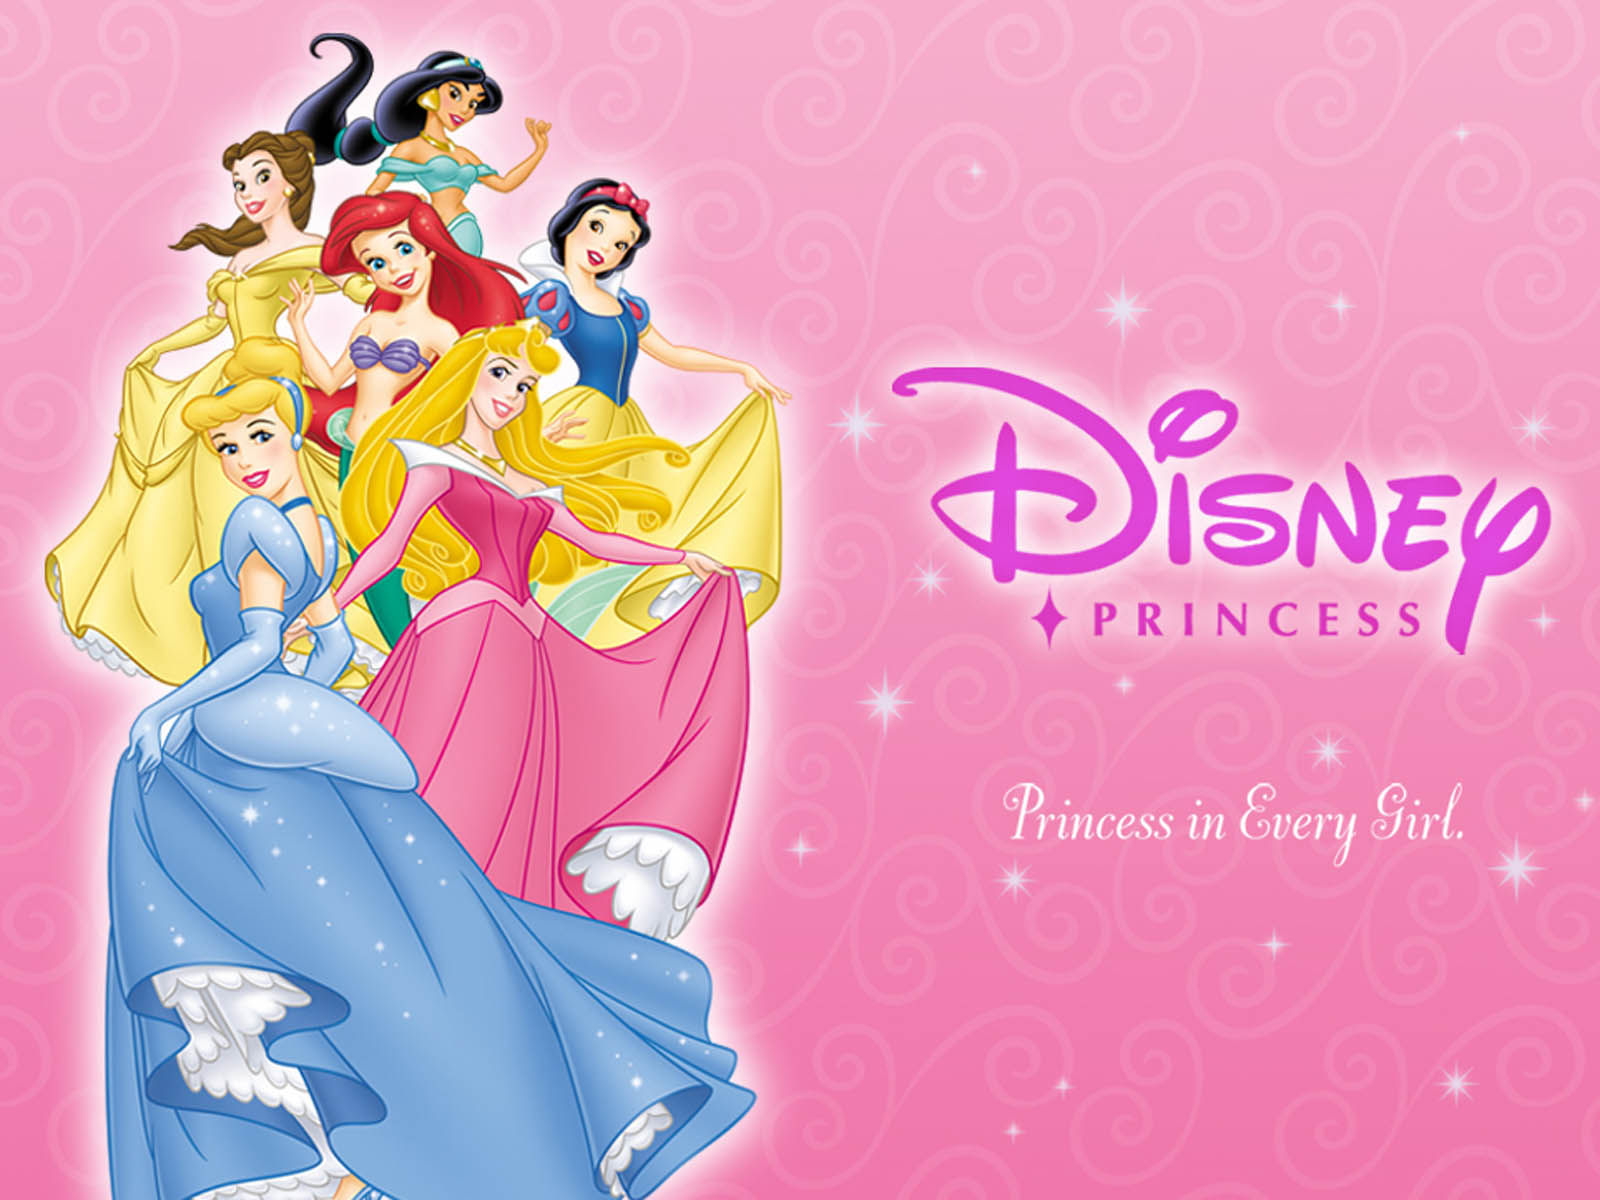 Tag Disney Princess Wallpapers Backgrounds Paos Images and 1600x1200